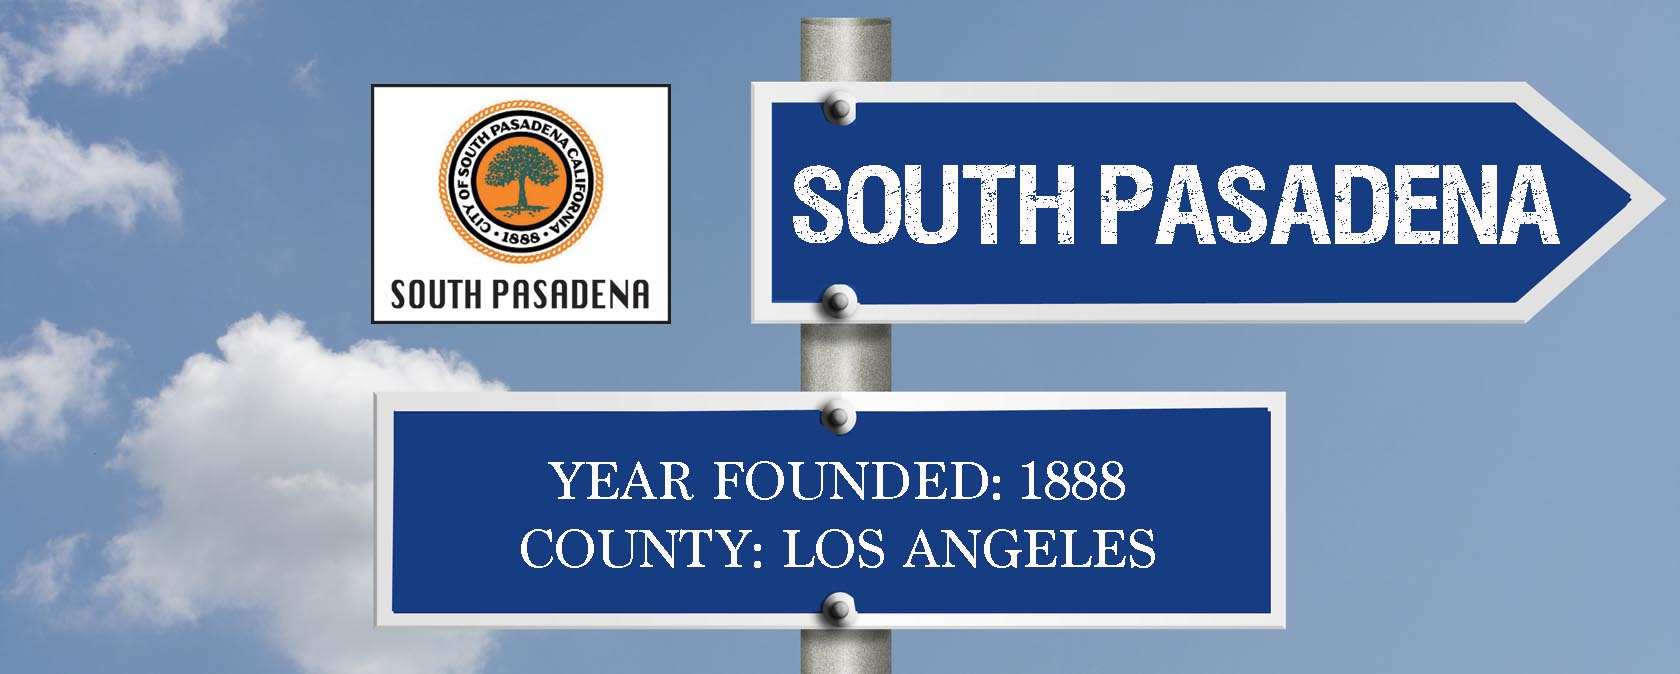 city sign-SOUTH PASADENA